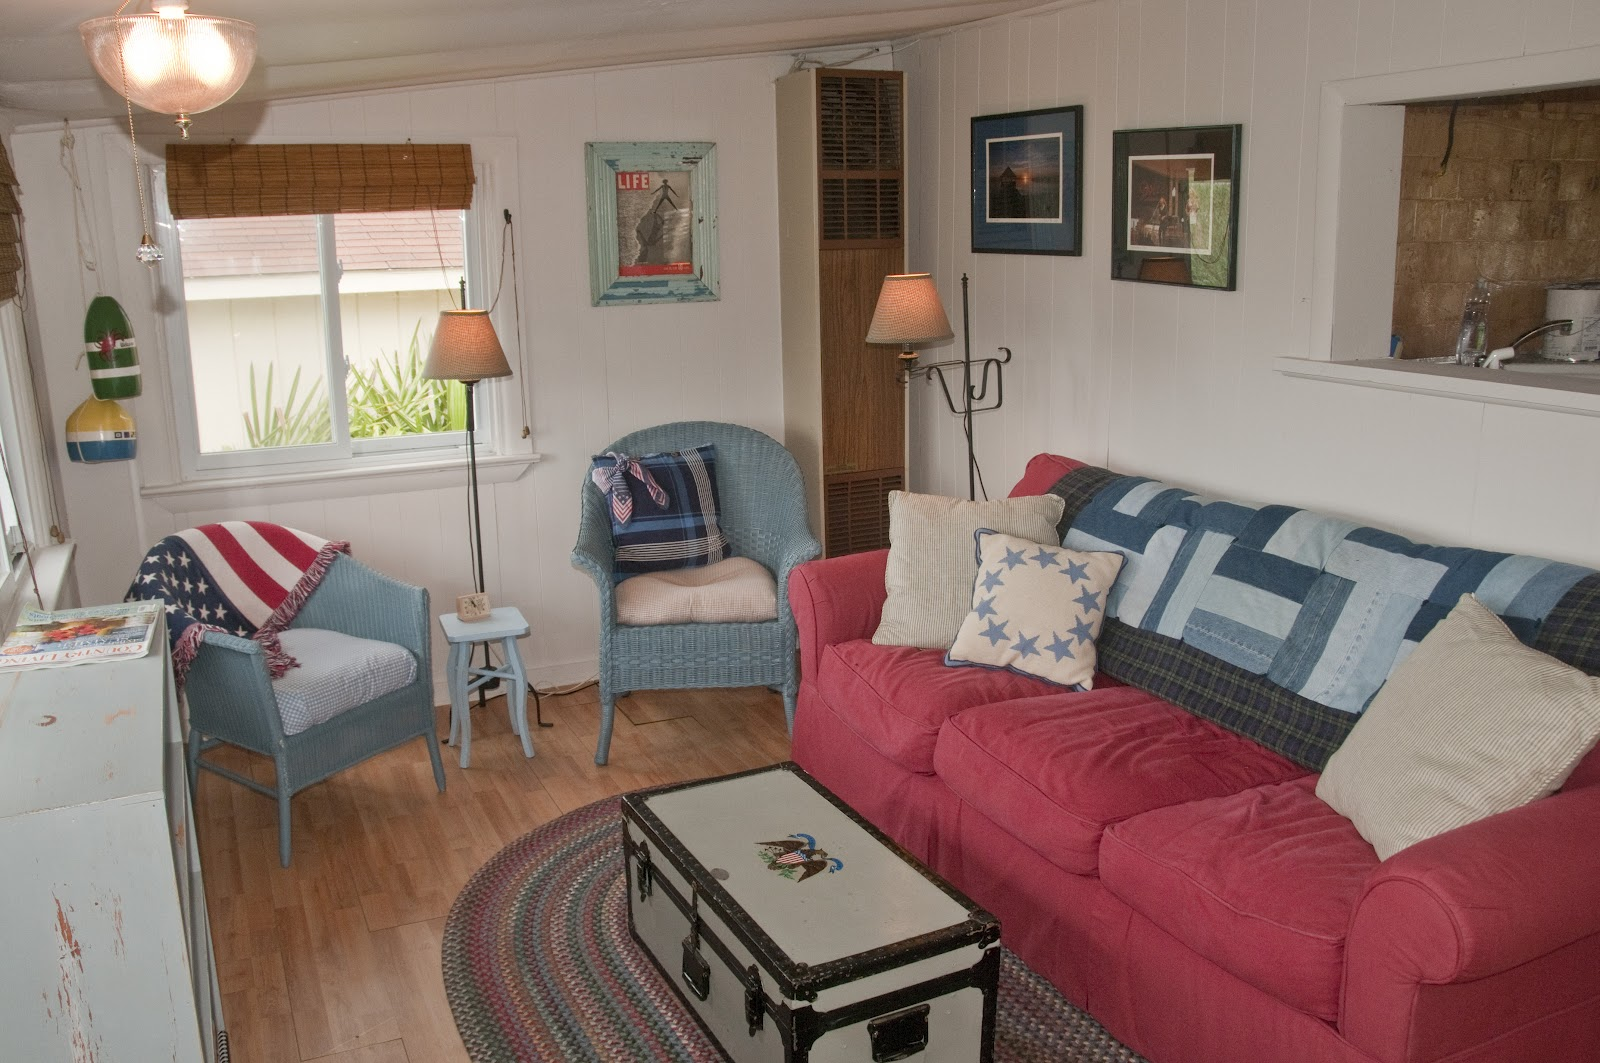 living-room-remodel-in-mobile-home Mobile Home Remodels Living Room on remodel mobile home walls, decorating with gray walls living room, remodel old mobile home interior, primitive home decor living room, remodel mobile home cabin, remodel mobile home bathroom,